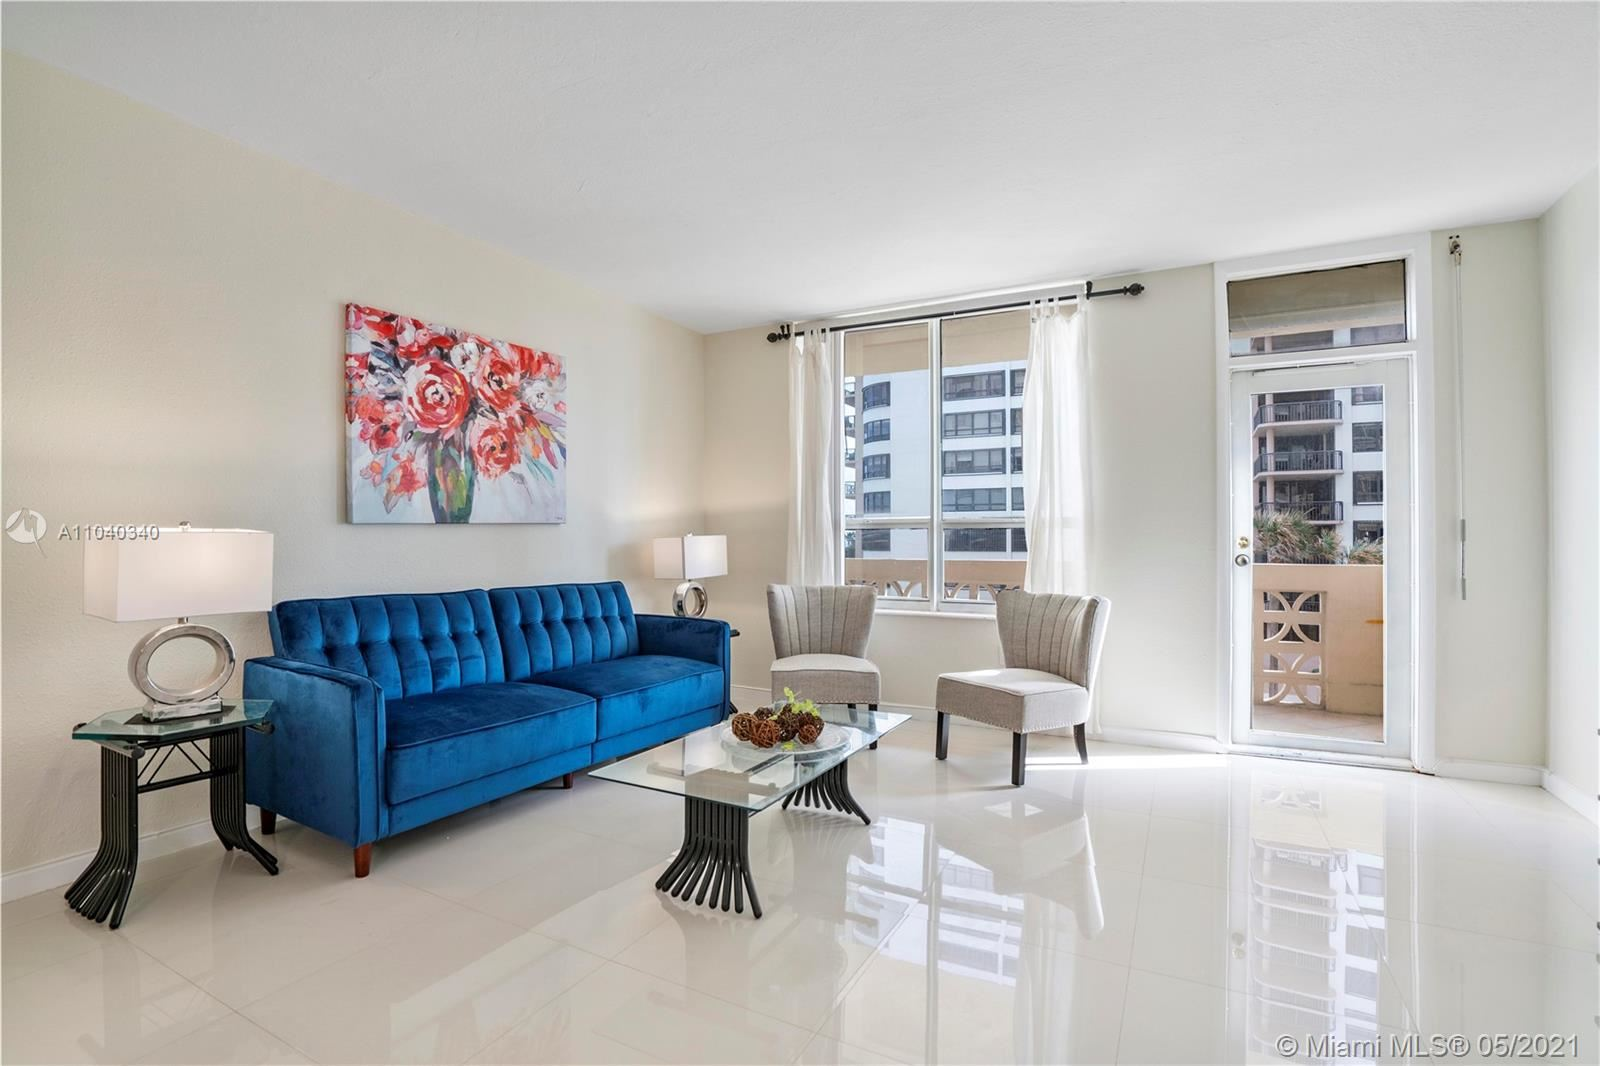 Photo of 10185 S Collins Ave #515, Bal Harbour, FL 33154 (MLS # A11040340)